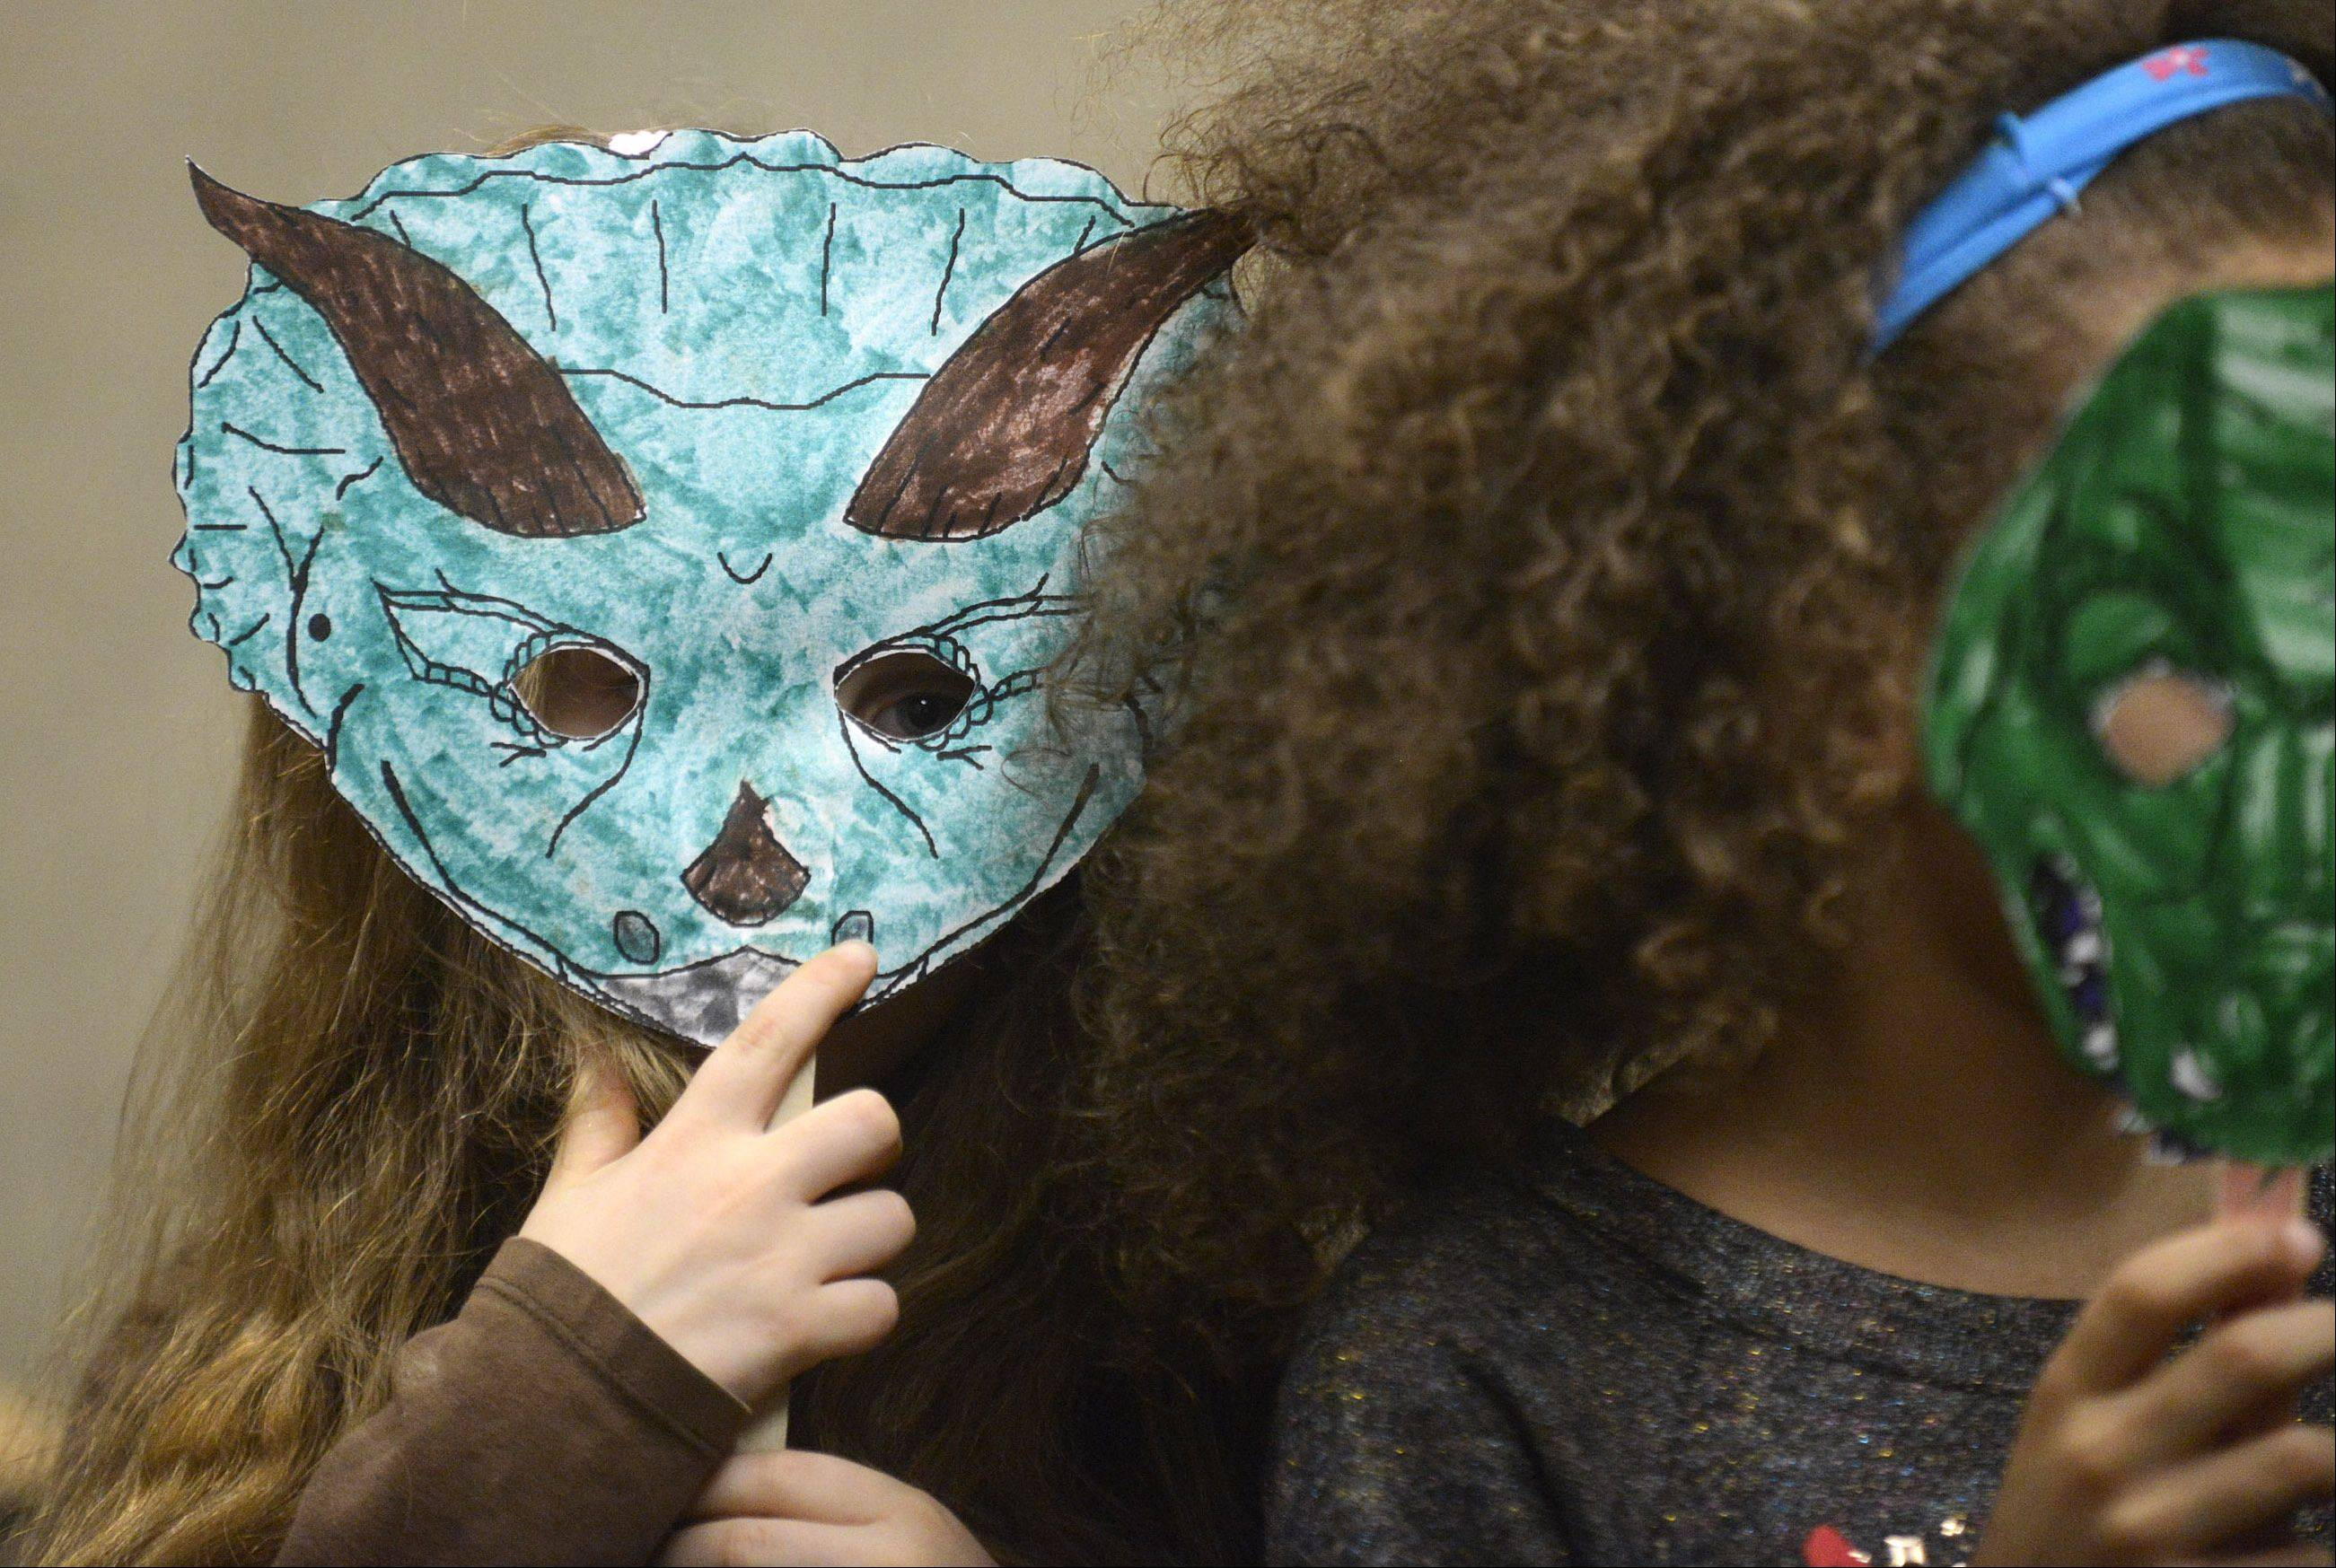 Meredith Parmele, 7, of Crystal Lake, peers out from behind her hand-colored triceratops mask as she and other children join in a dinosaur parade during a dinosaur-themed Super Saturday event for kindergarten and first graders at Algonquin Public Library. Several of the kids let loose and roared and stomped like the ancient creatures during the parade after they learned all about dinos in the Triassic, Jurassic and Cretaceous periods.